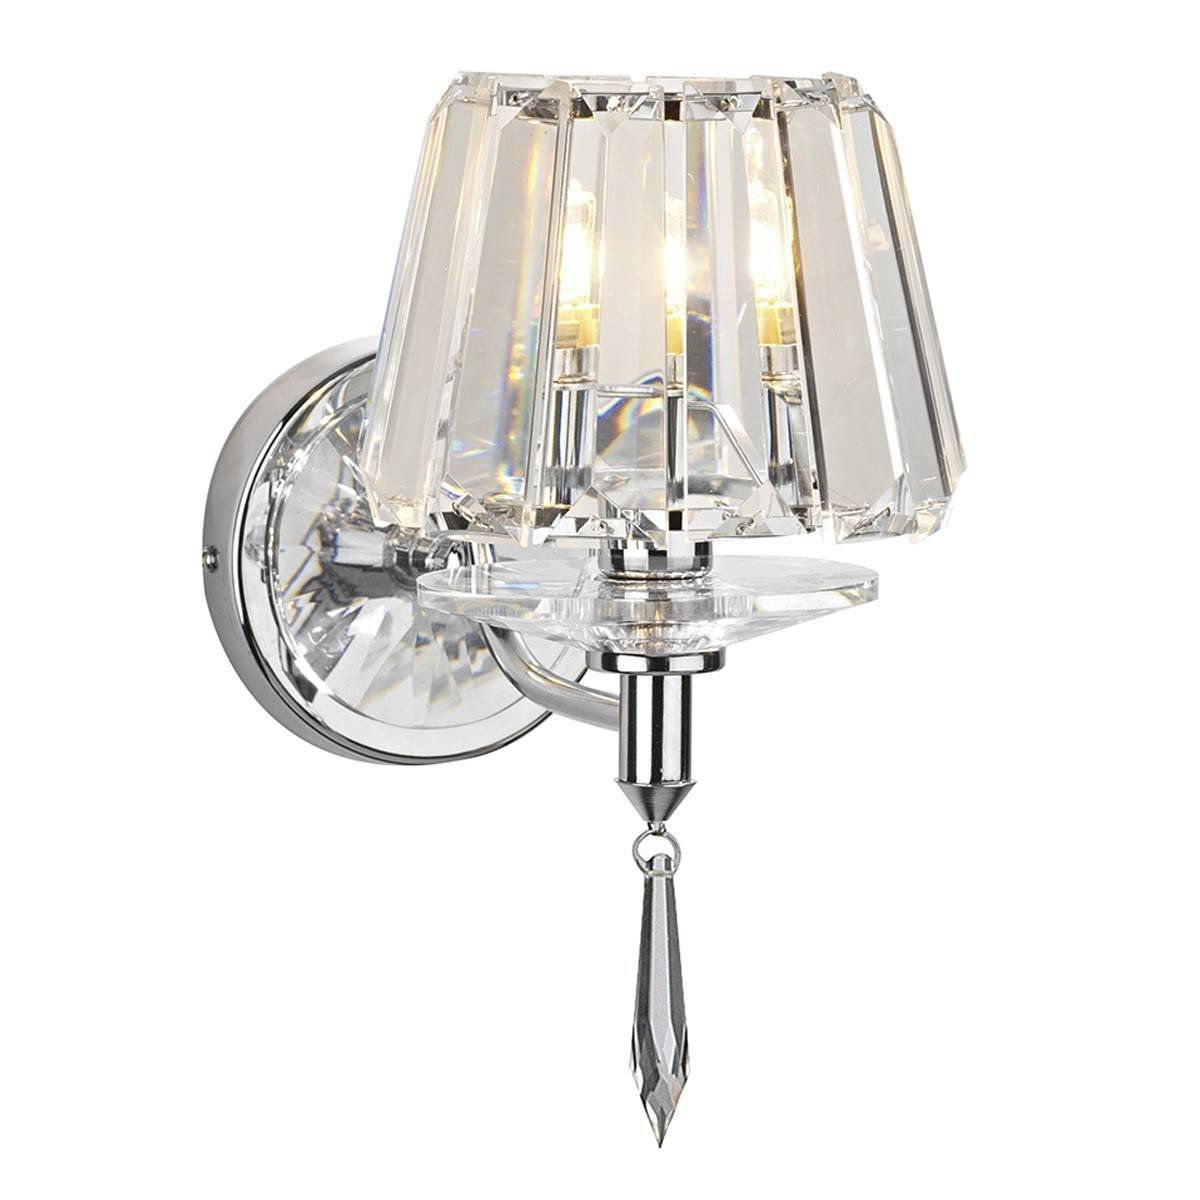 Selina Polished Chrome 1 Light Wall Bracket - London Lighting - 1